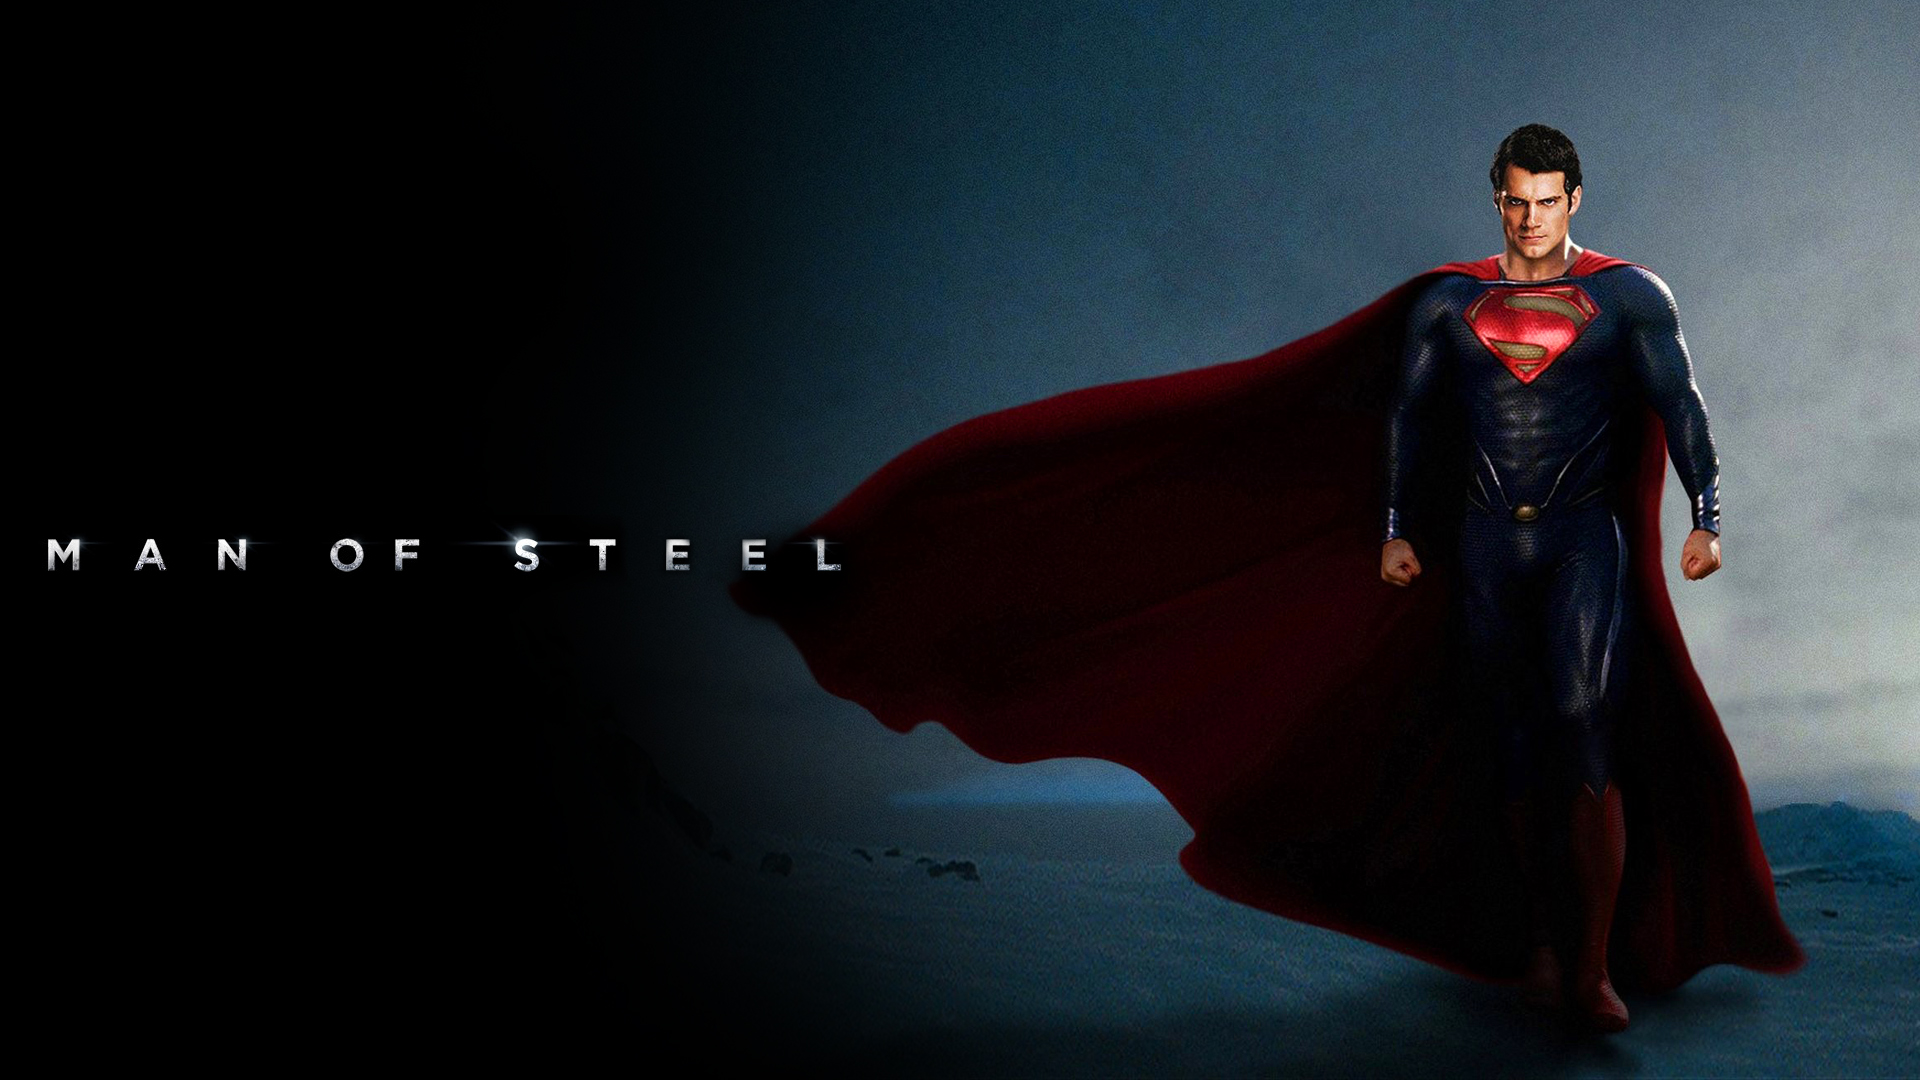 Enjoy this Man of Steel background Man of Steel wallpapers 1920x1080